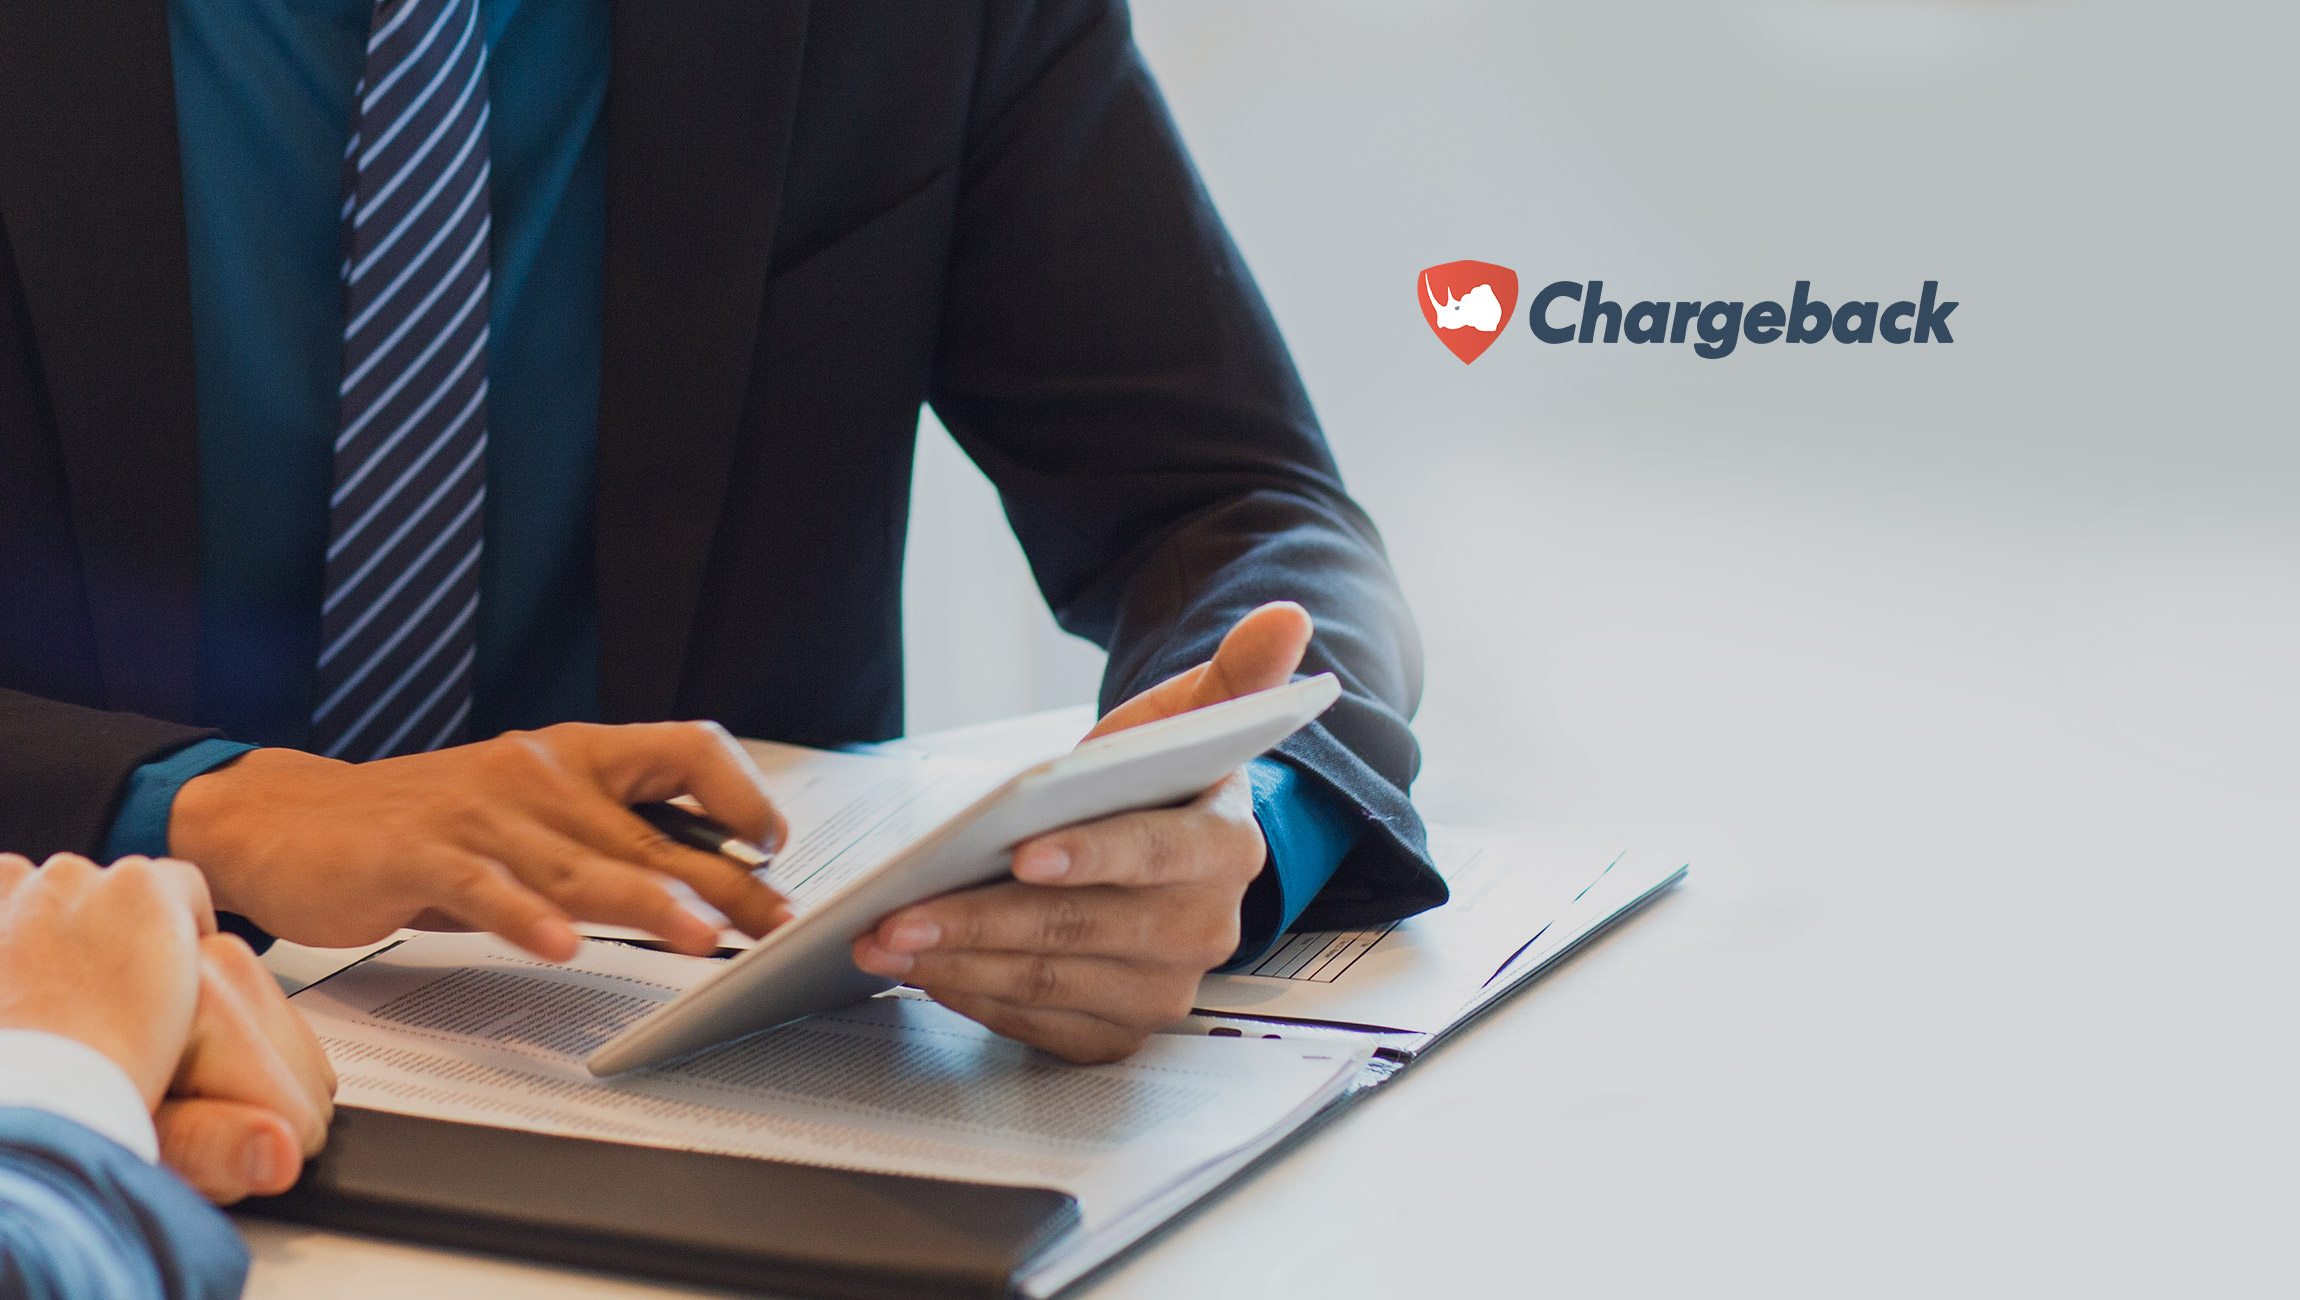 Chargeback Names John Munro Chief Executive Officer, Announces New Executive Hires